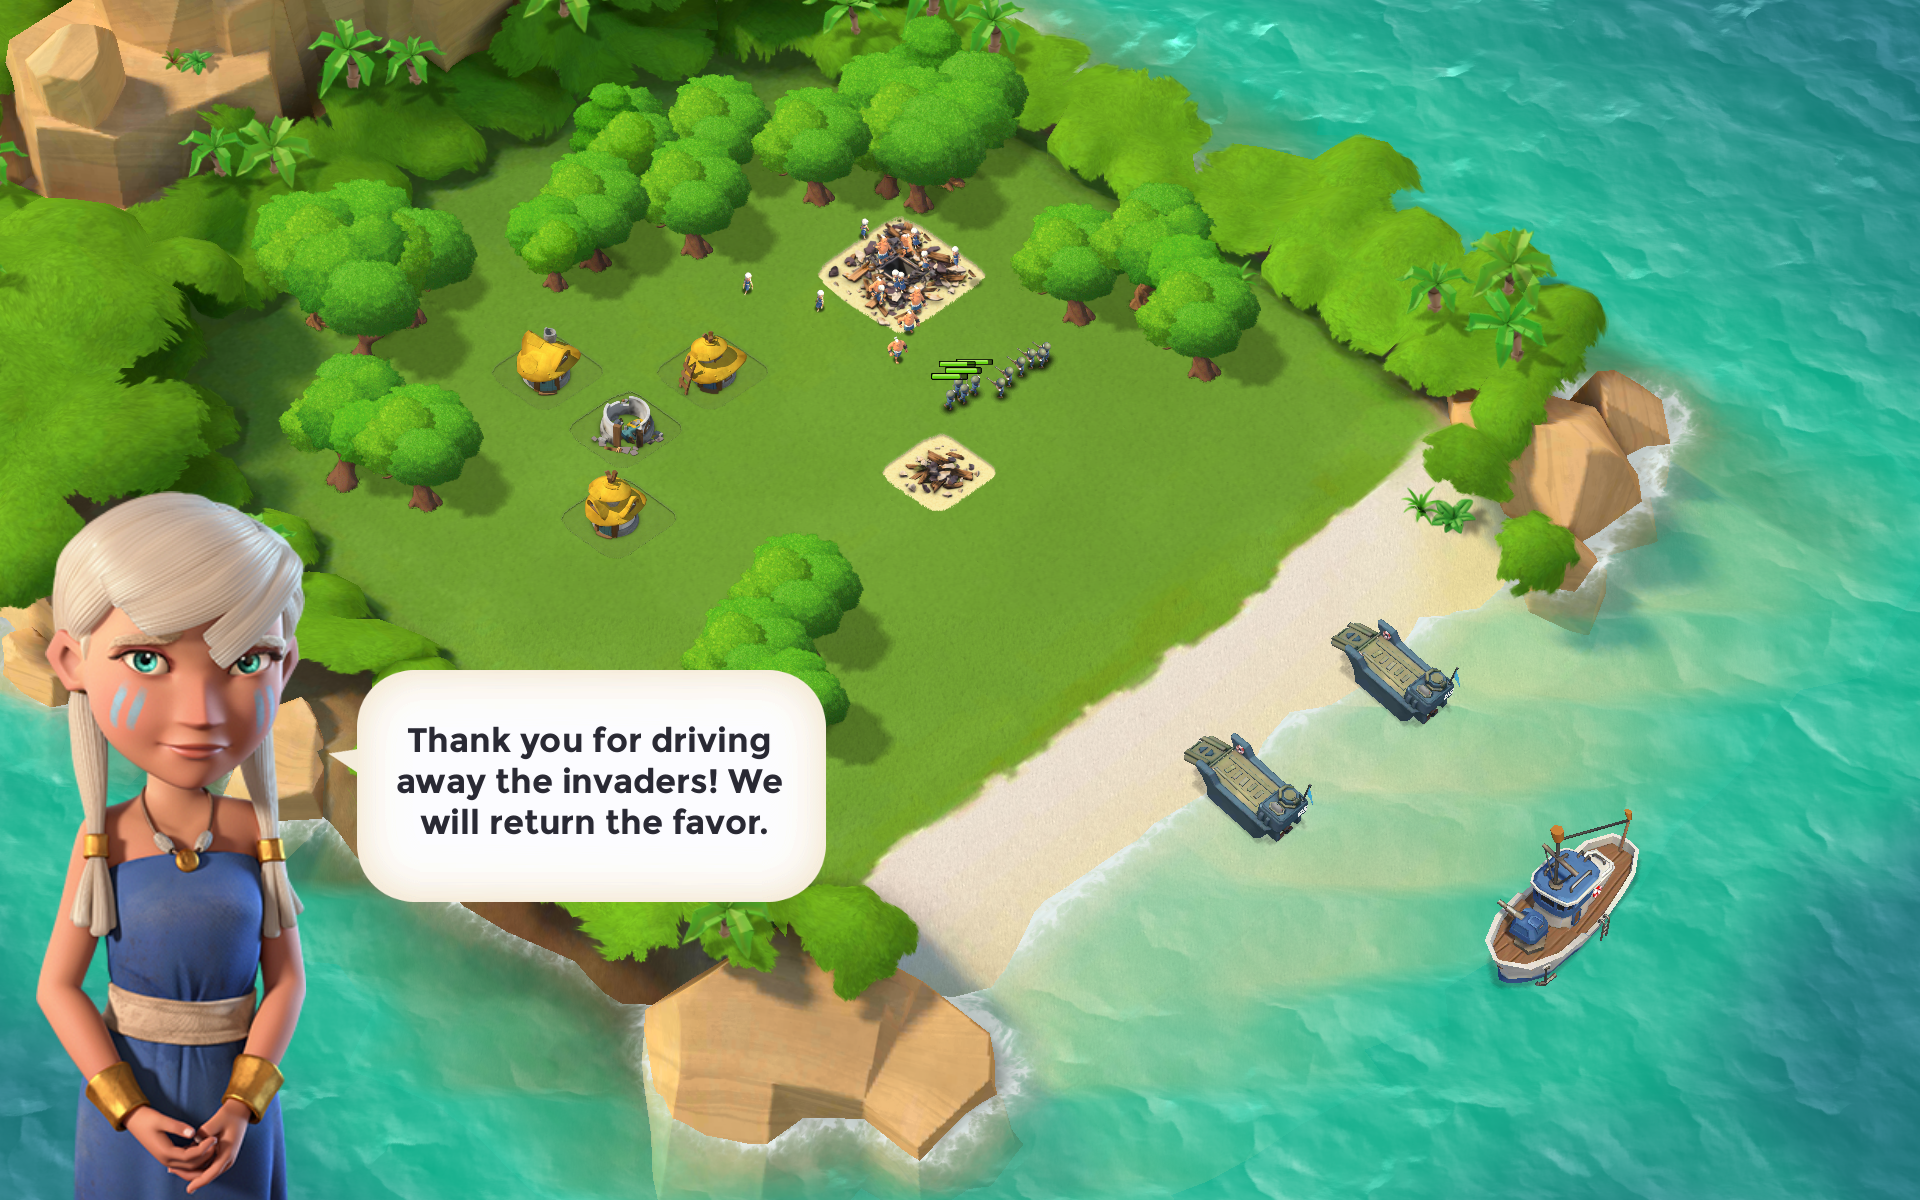 boom beach comes from the people who developed clash of clans and while this game is different they share the same genre those virtual buttons may look